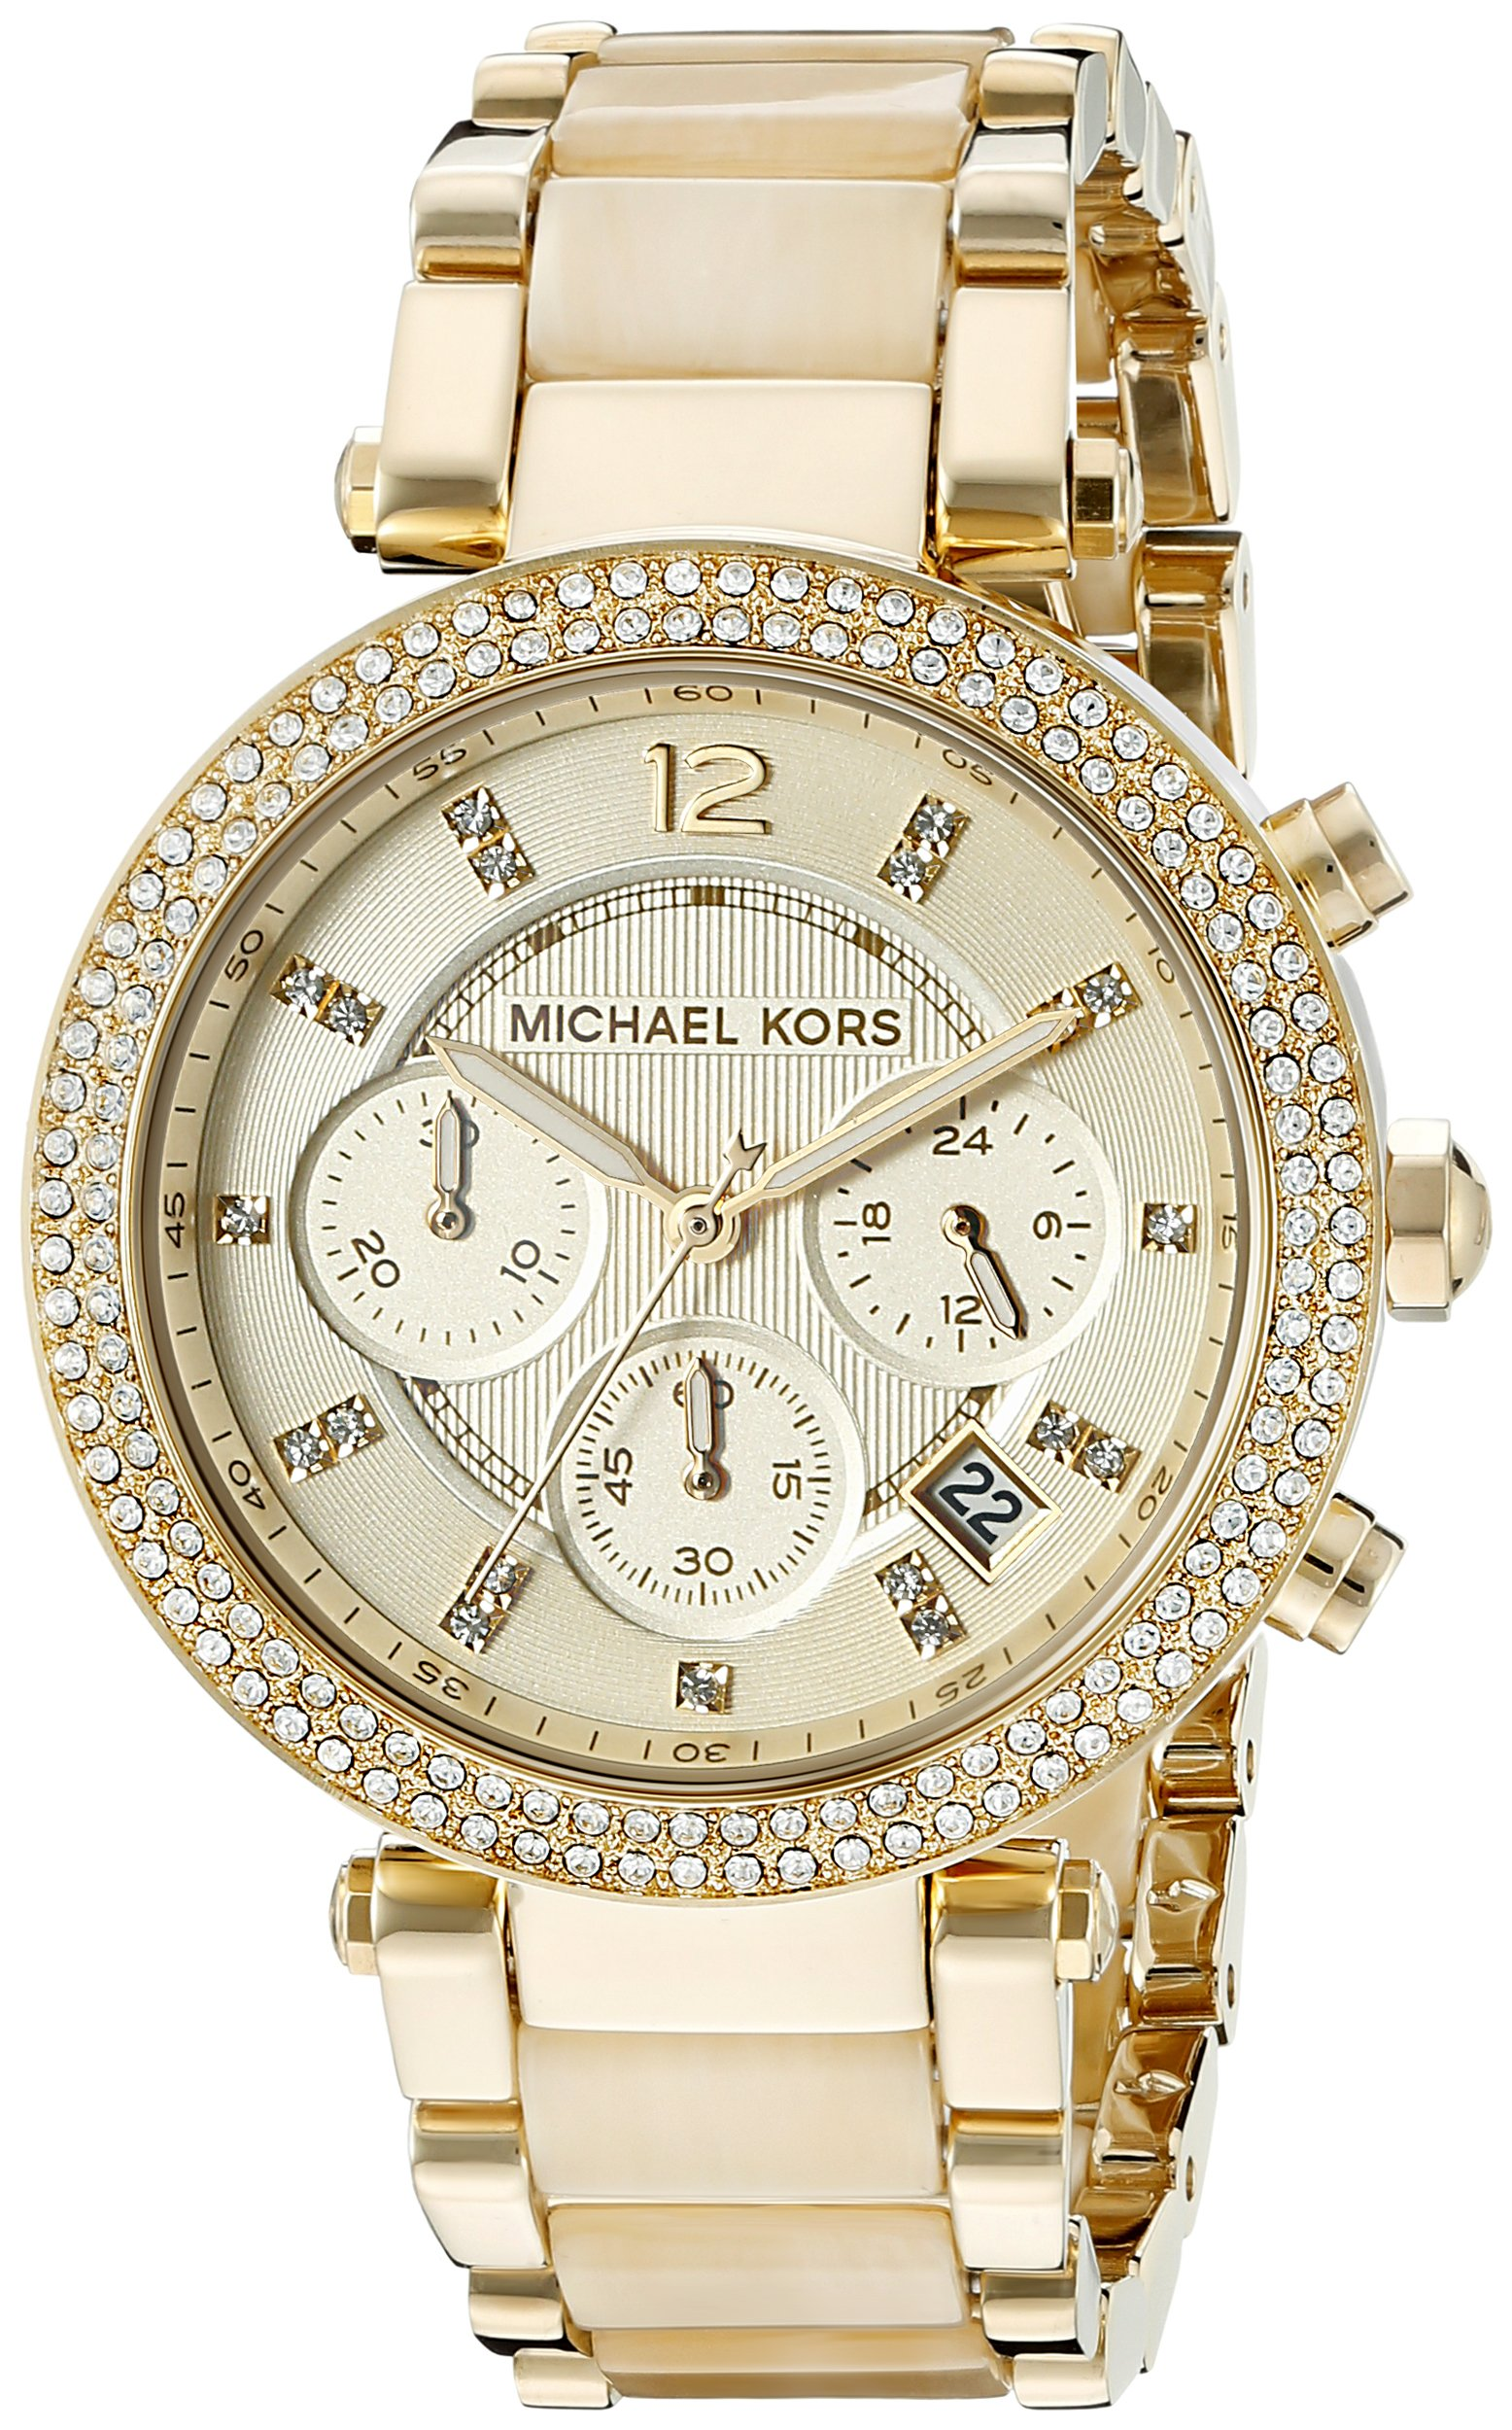 Michael Kors MK5632 Women's Parker Analog Display Chronograph Quartz Watch, Gold Stainless Steel and Horn Acetate Band, Round 39mm Case by Michael Kors